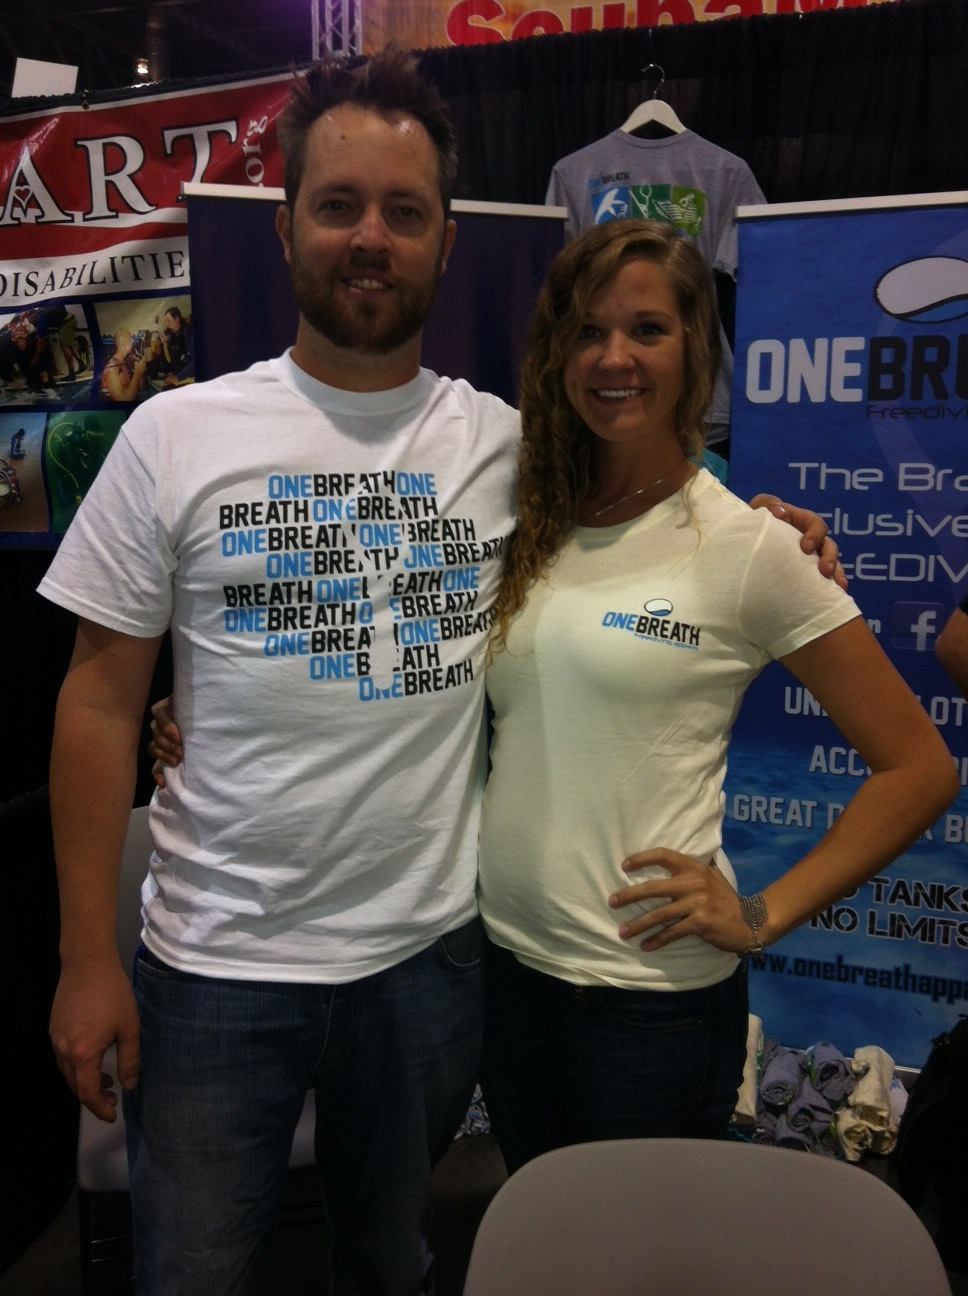 DEMA Show 2012: New Freediving Shirts Unveiled At DEMA 2012 3